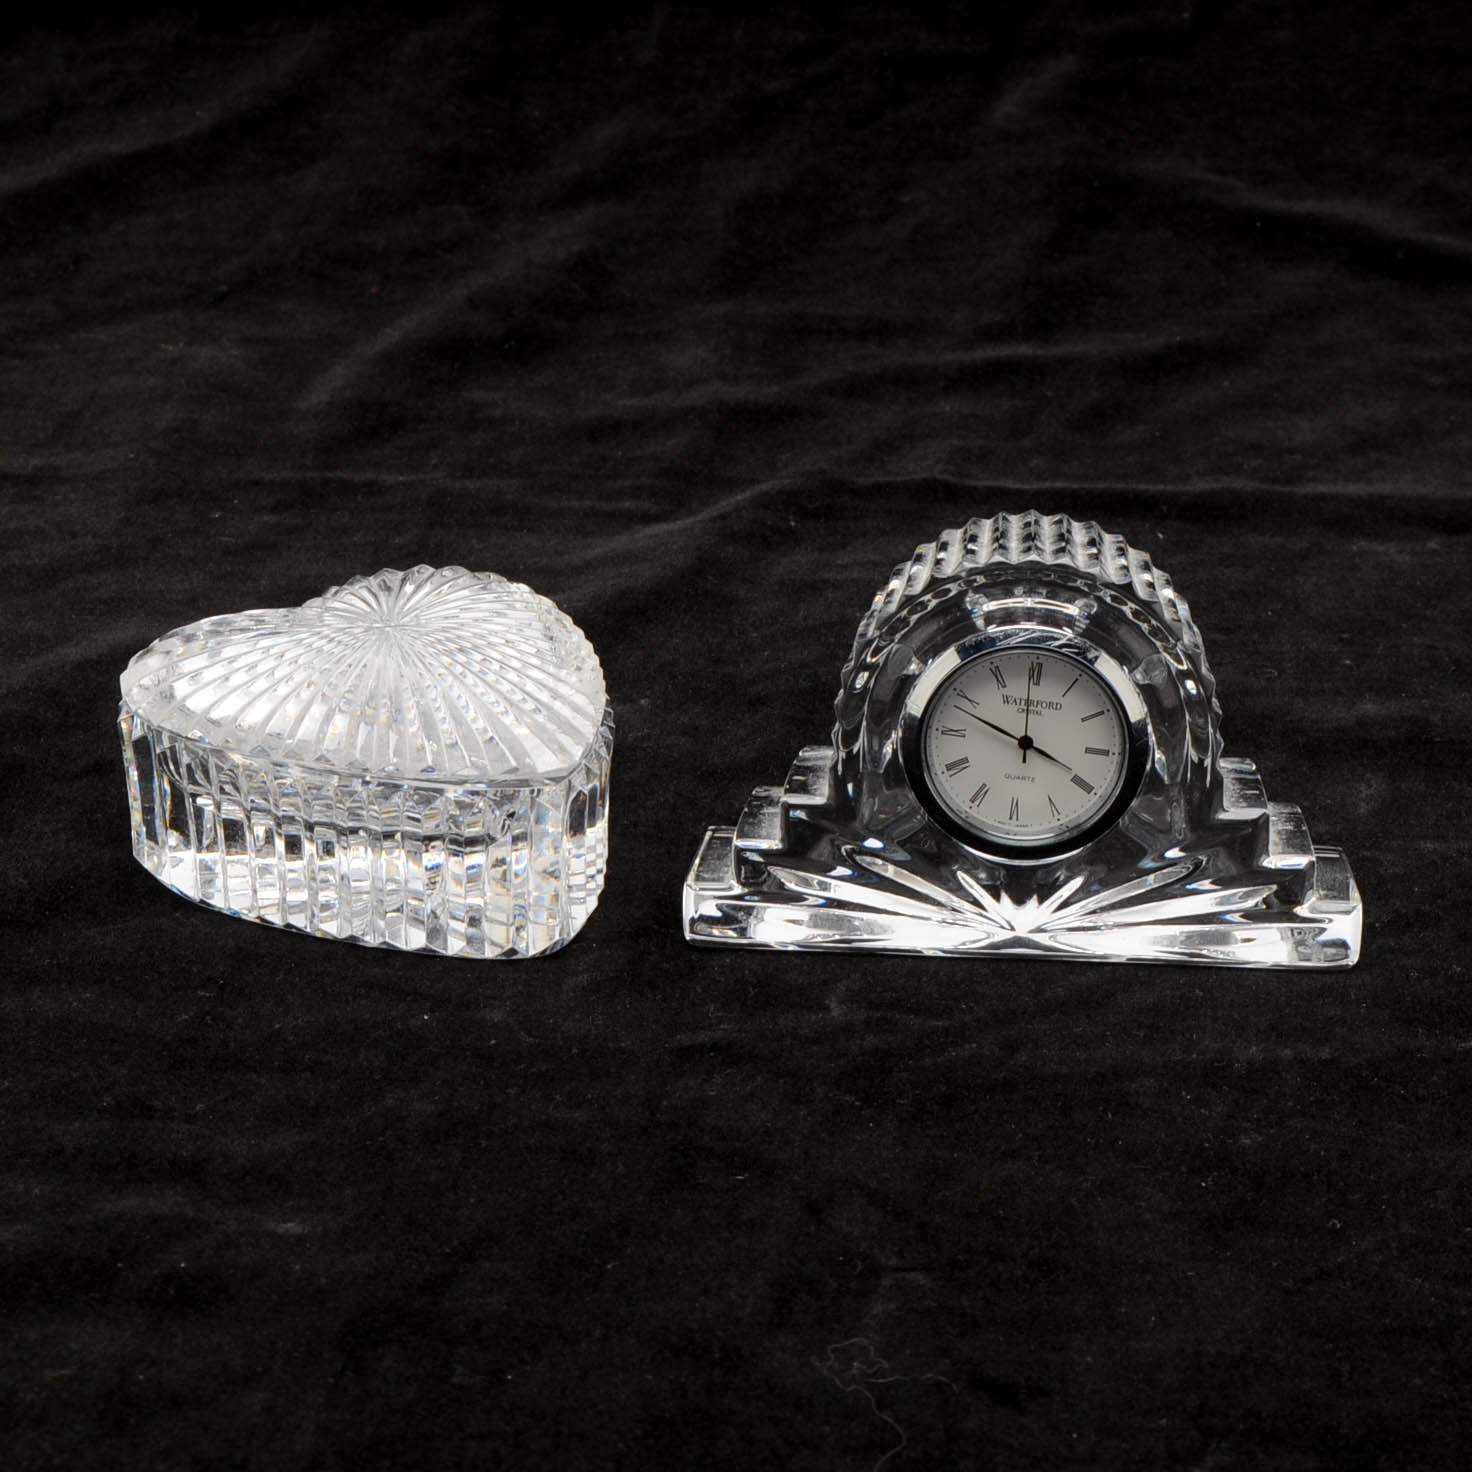 Waterford Crystal Trinket Box and  Miniature  Mantle Clock